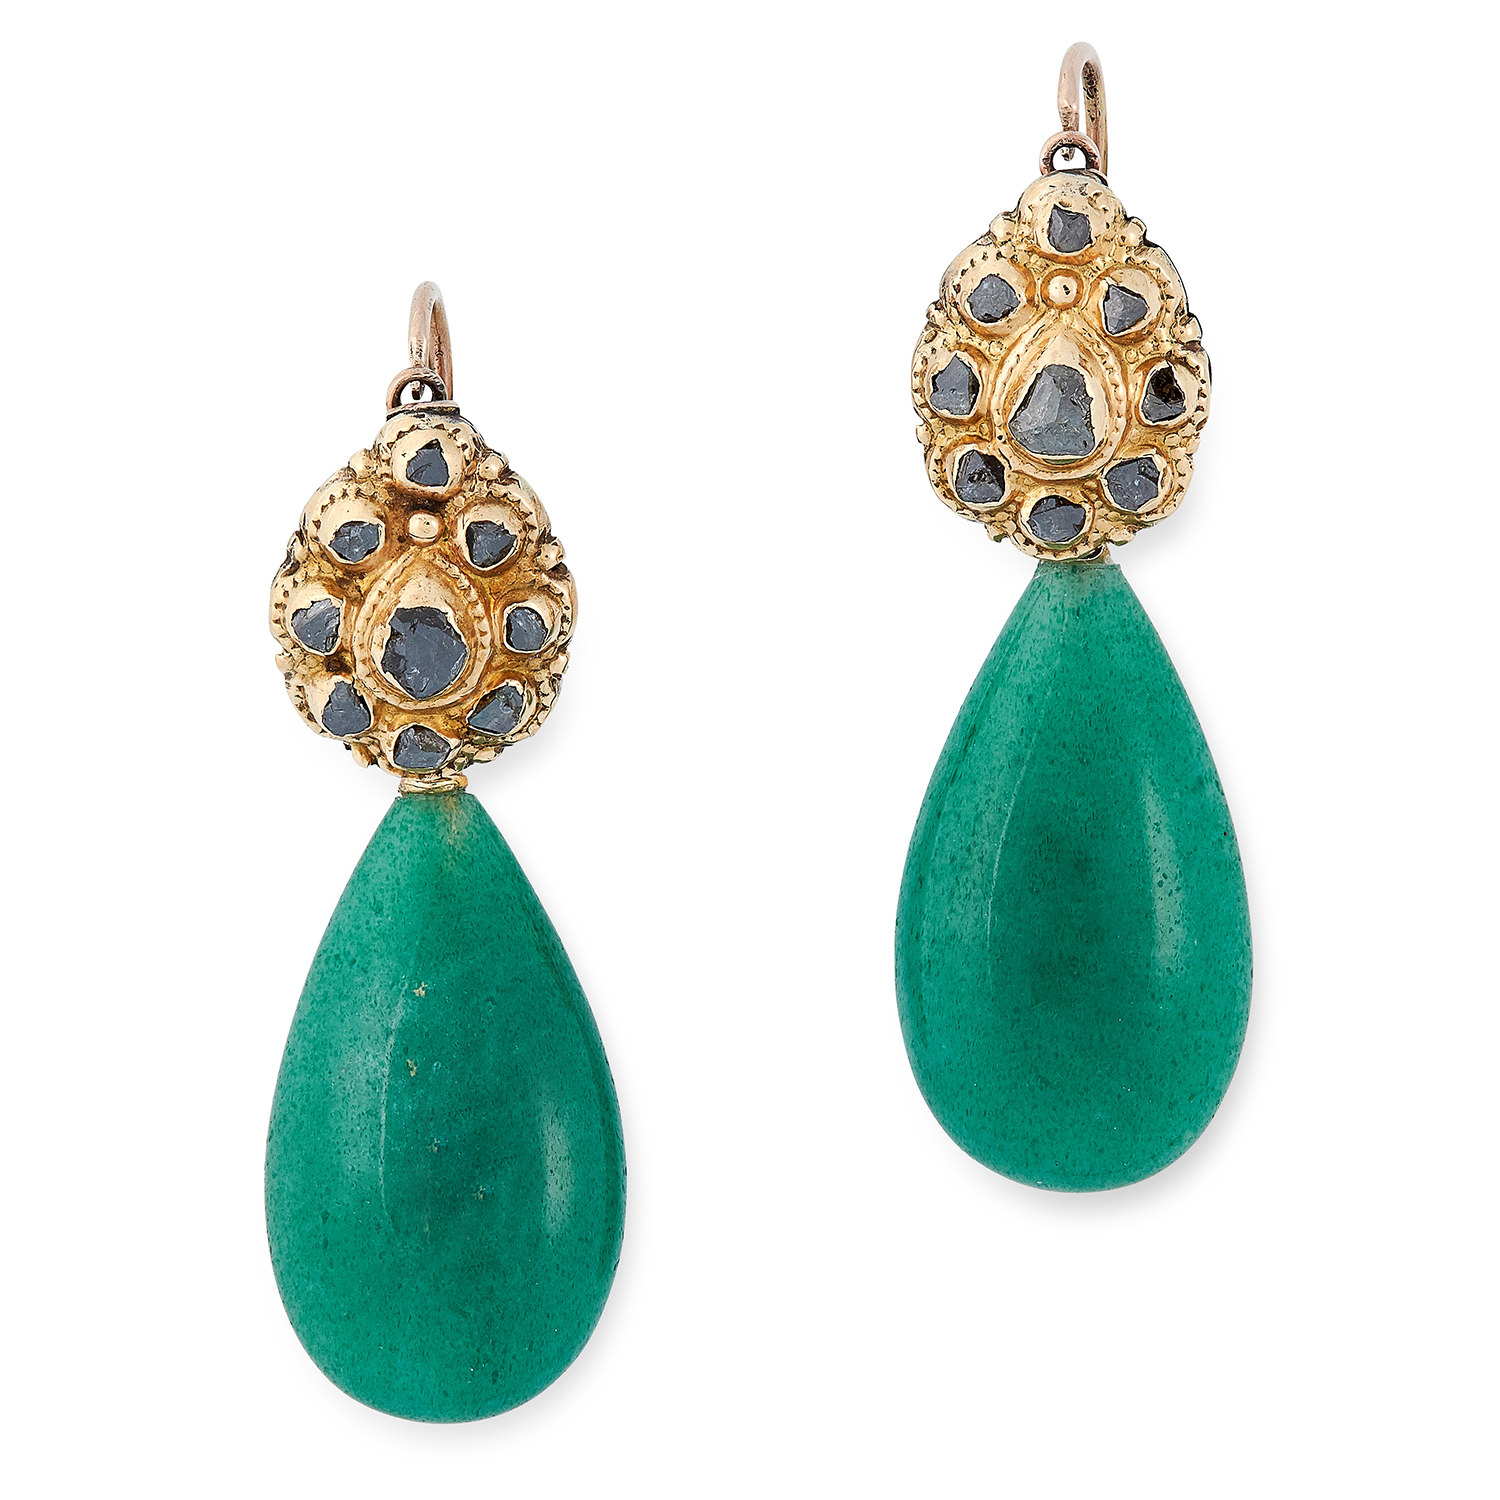 Los 40 - DIAMOND AND AVENTURINE EARRINGS each set with rose cut diamonds and suspending a polished aventurine